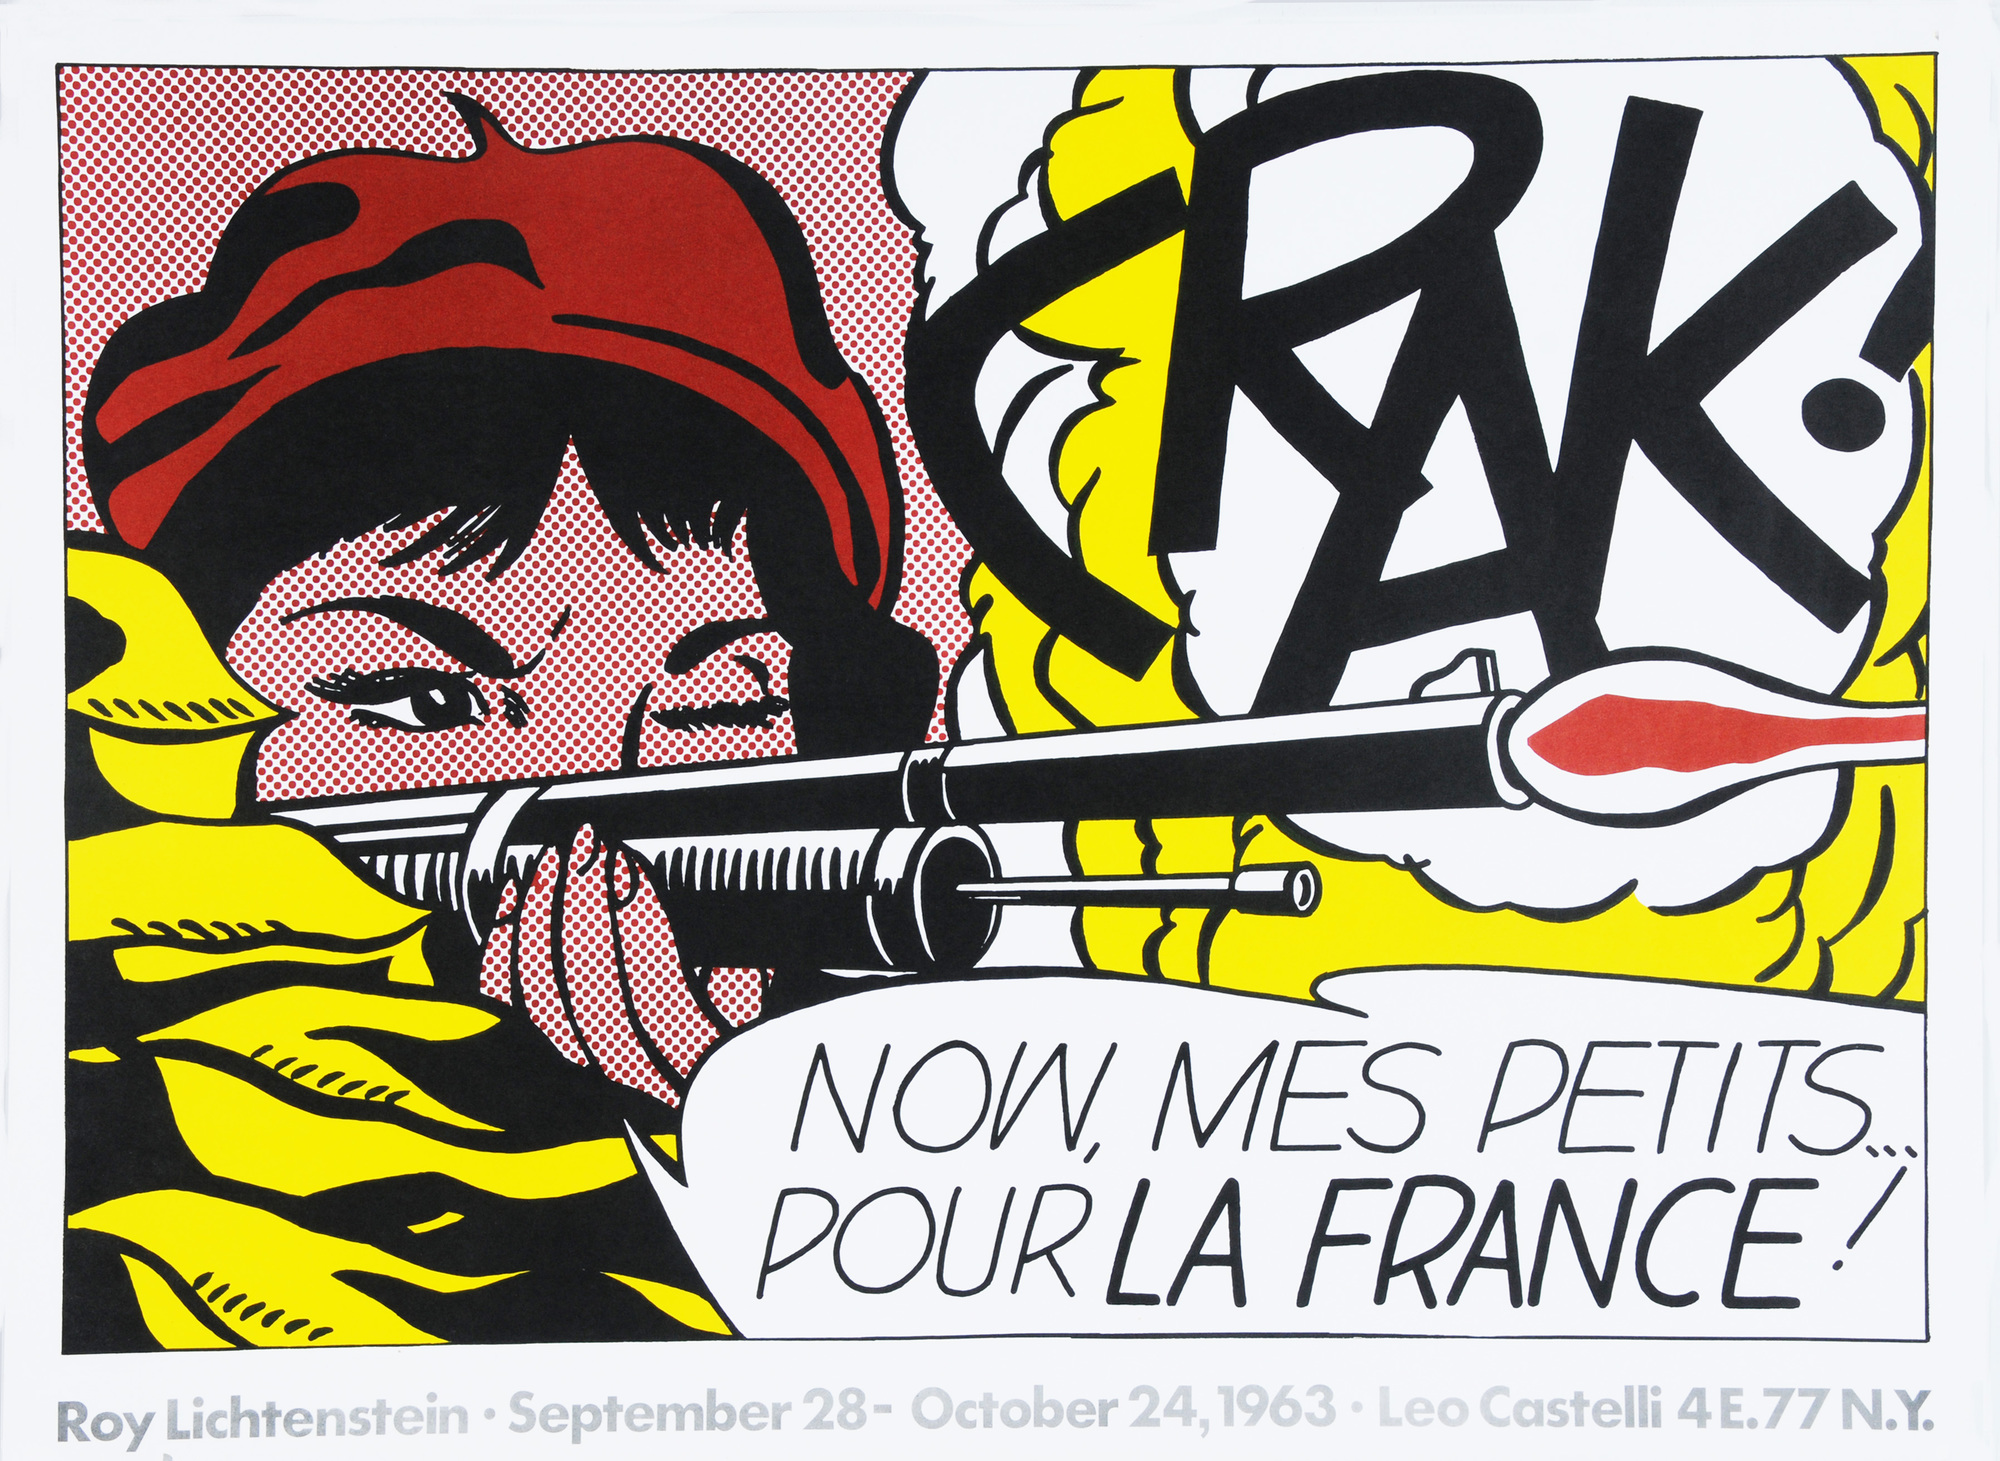 Lichtenstein Roy, Crak!  Roy Lichtenstein,  September 28 - October 24, 1963, Leo Castelli, NY